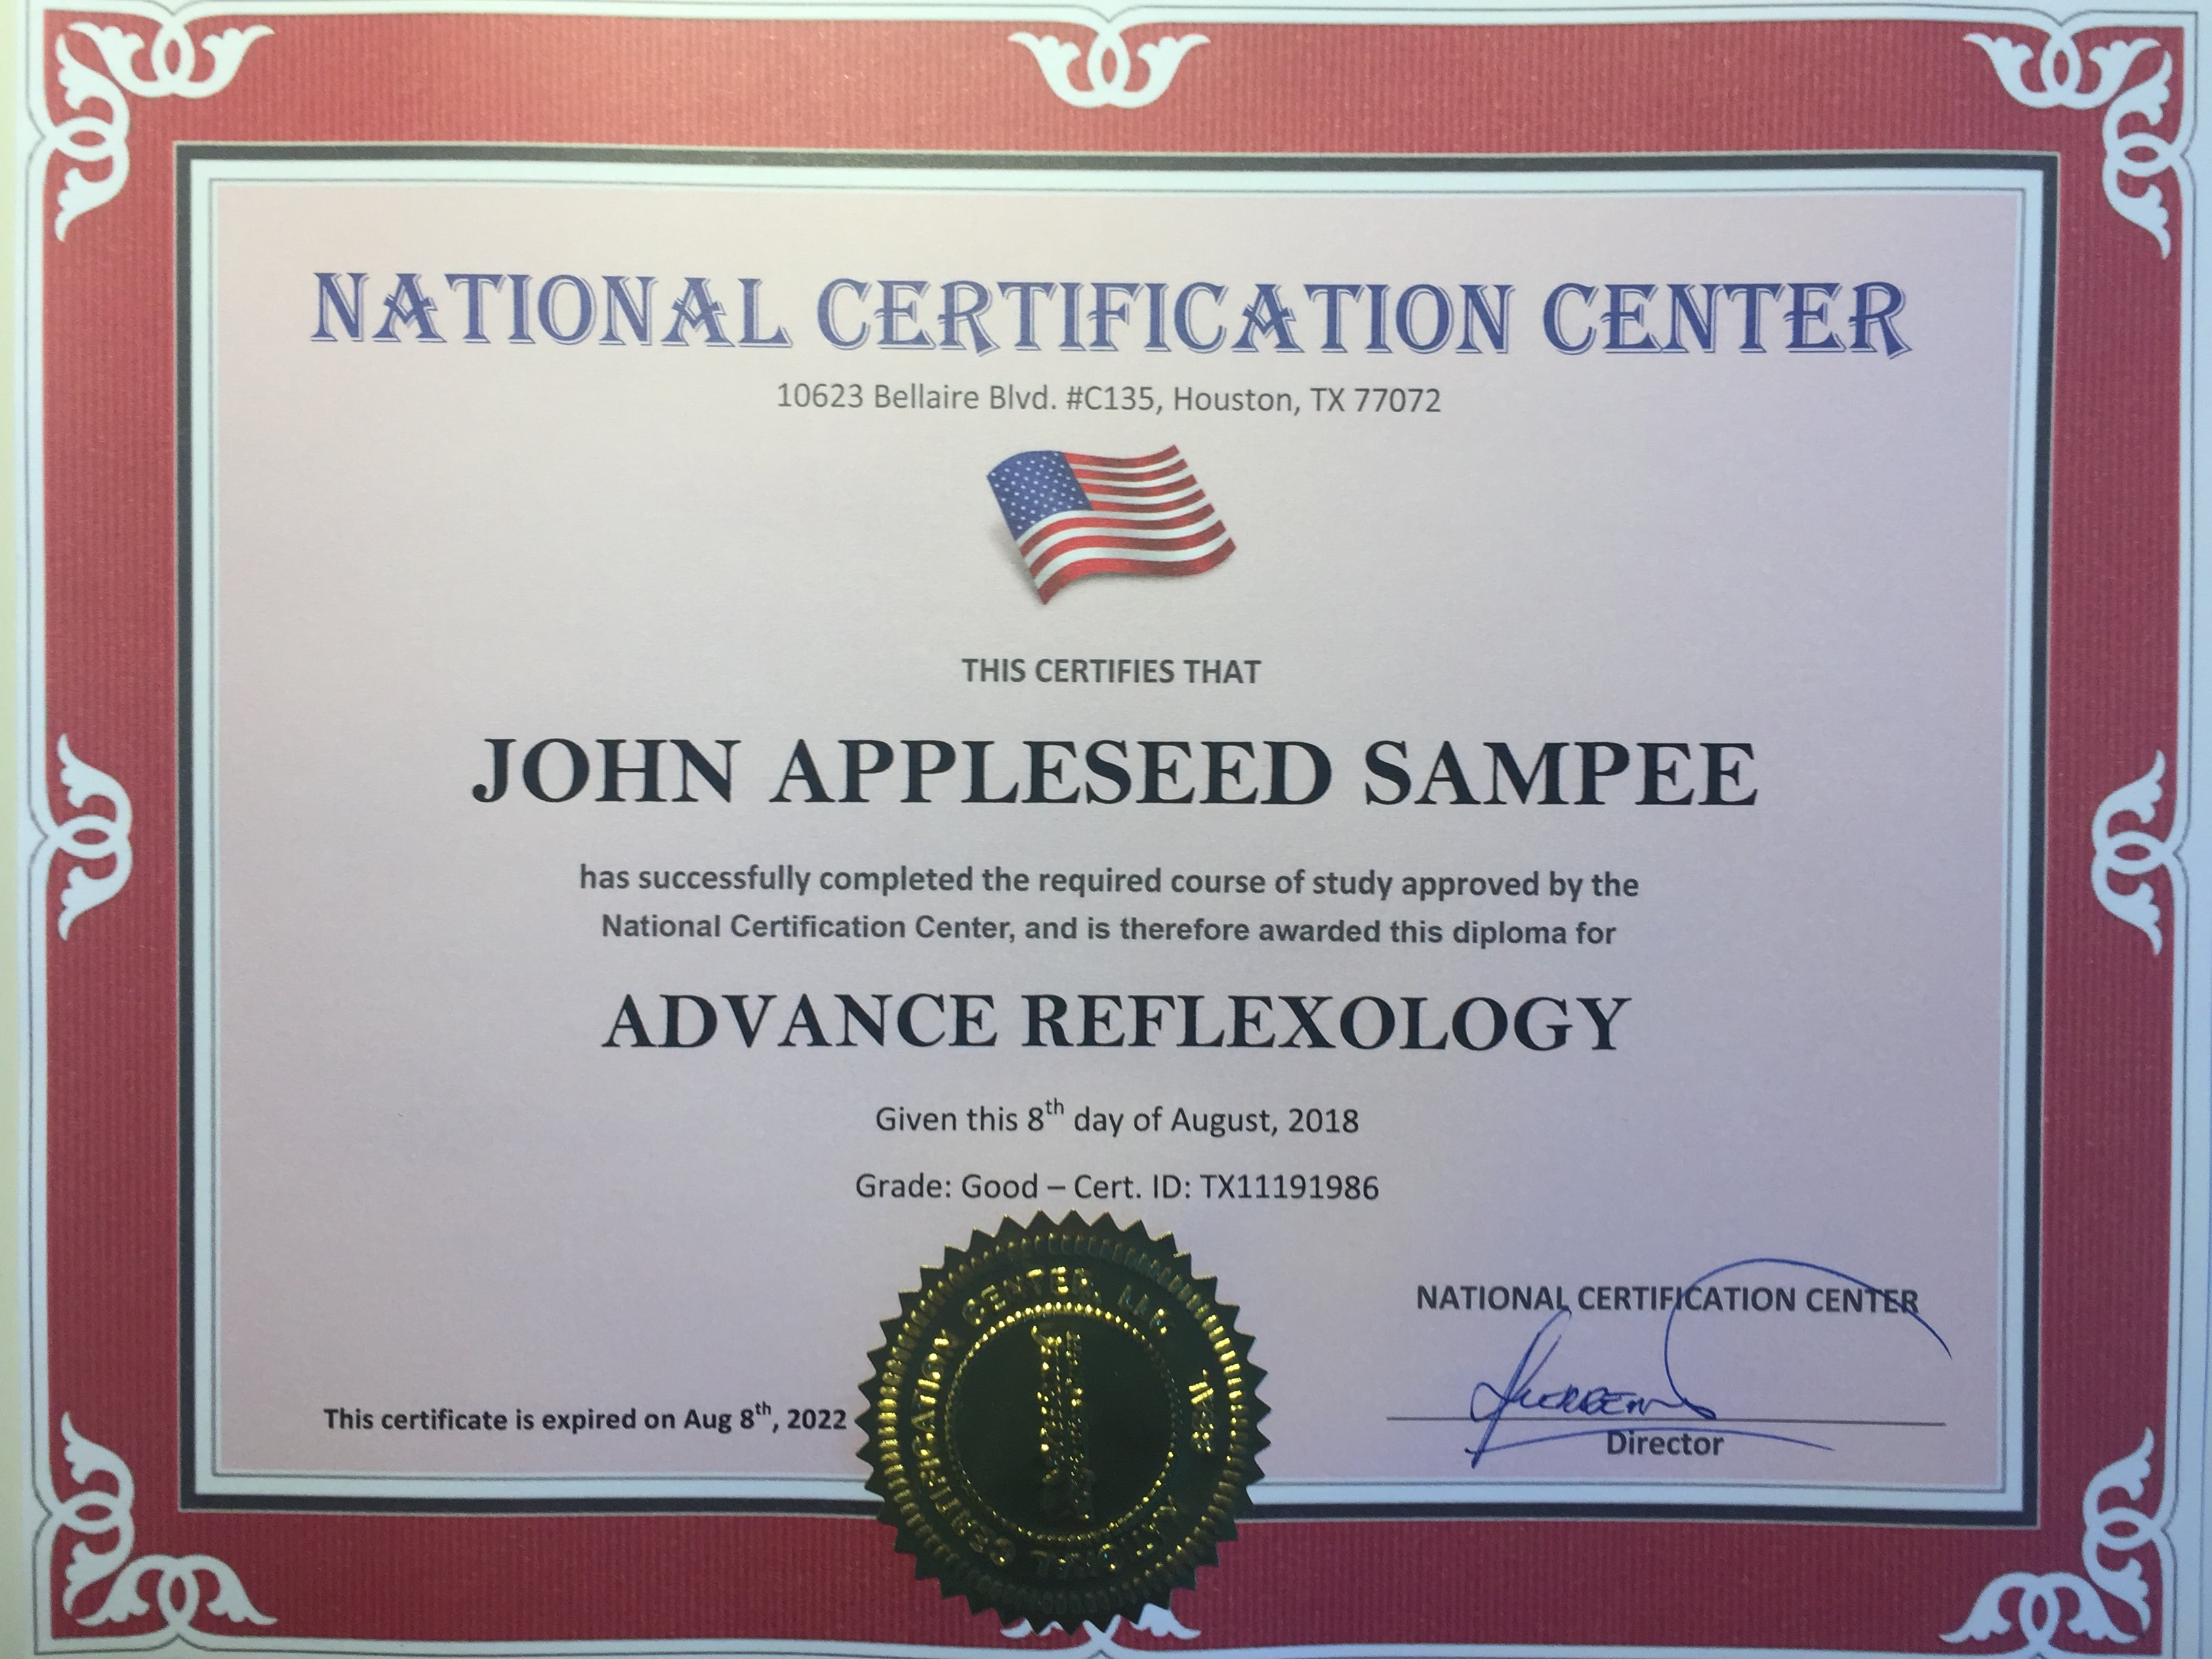 National Certification Center